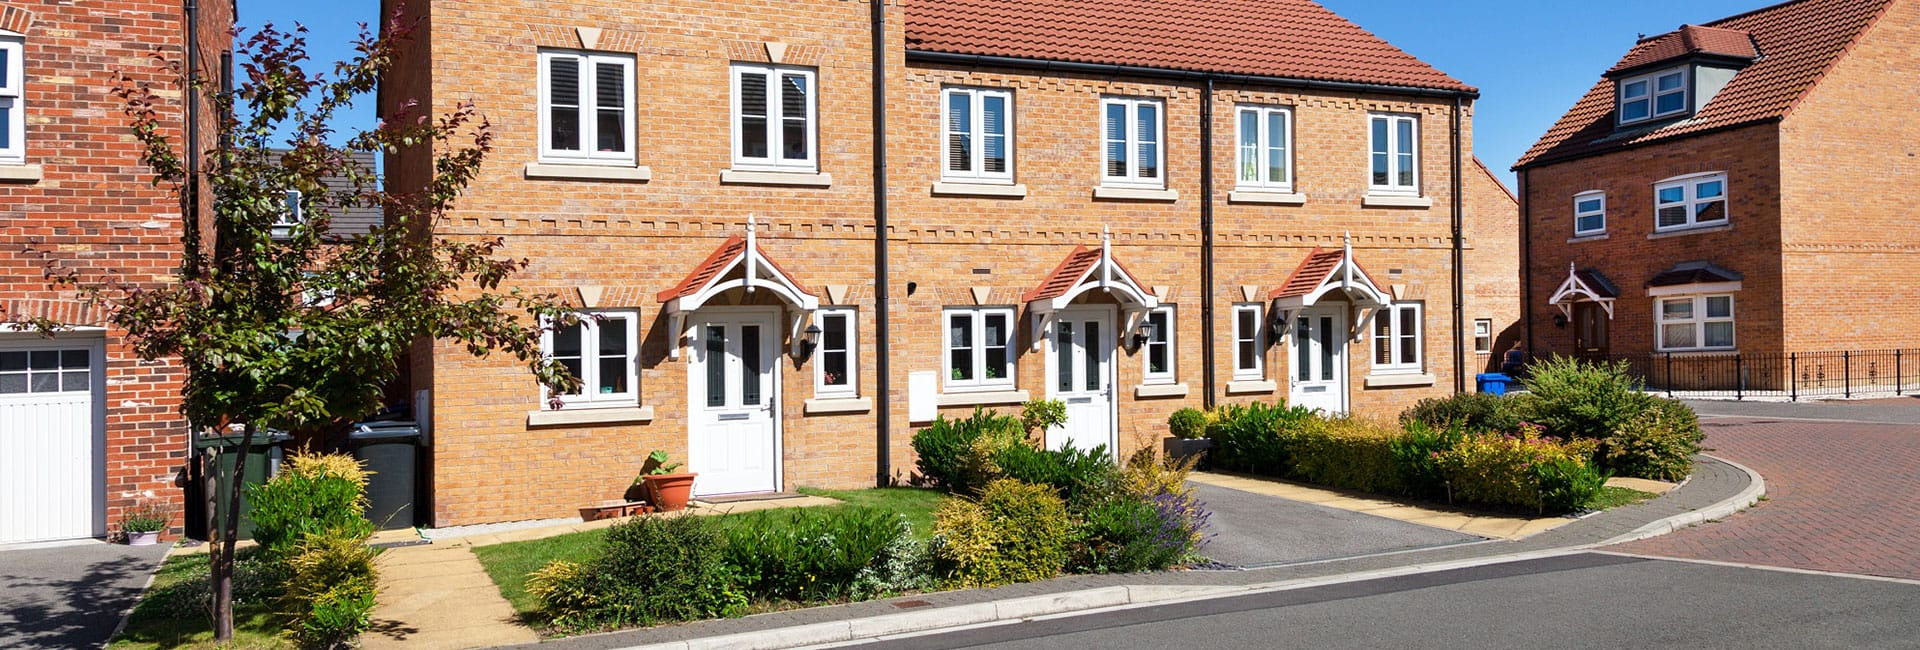 Row of new build houses - Property activity